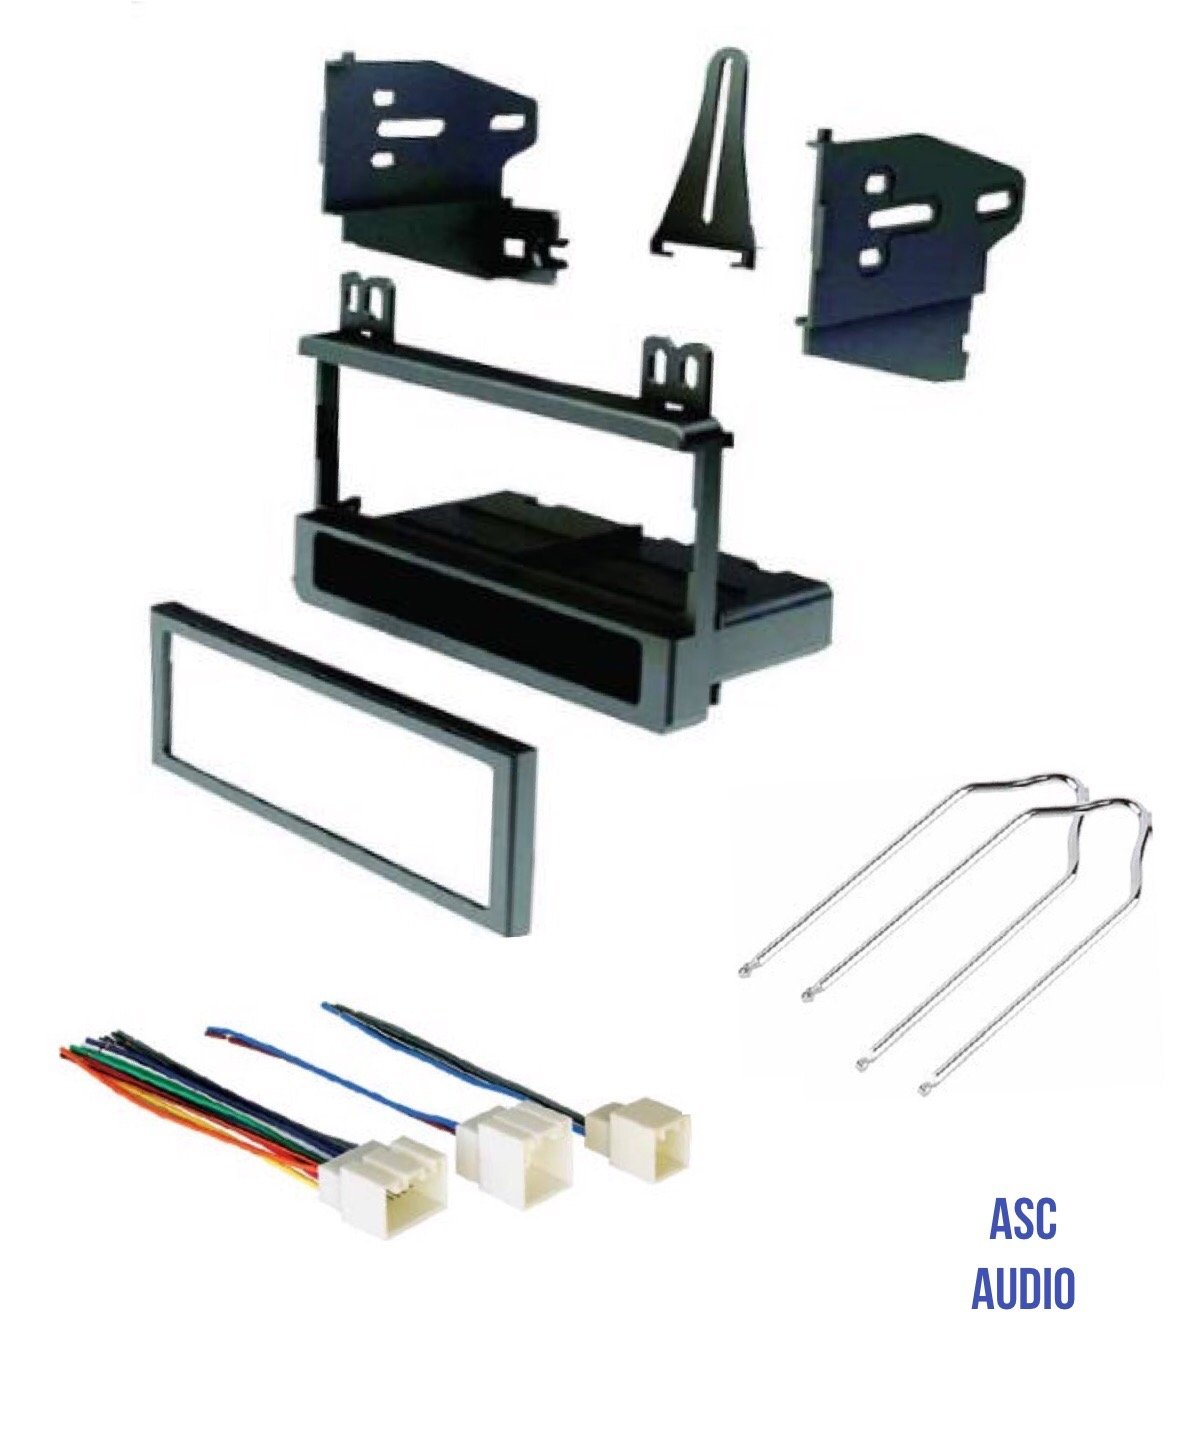 Best Rated In Car Audio Video Dash Mounting Kits Helpful Ford Aftermarket Radio Wiring Harness Asc Stereo Kit Wire And Tool To Install A